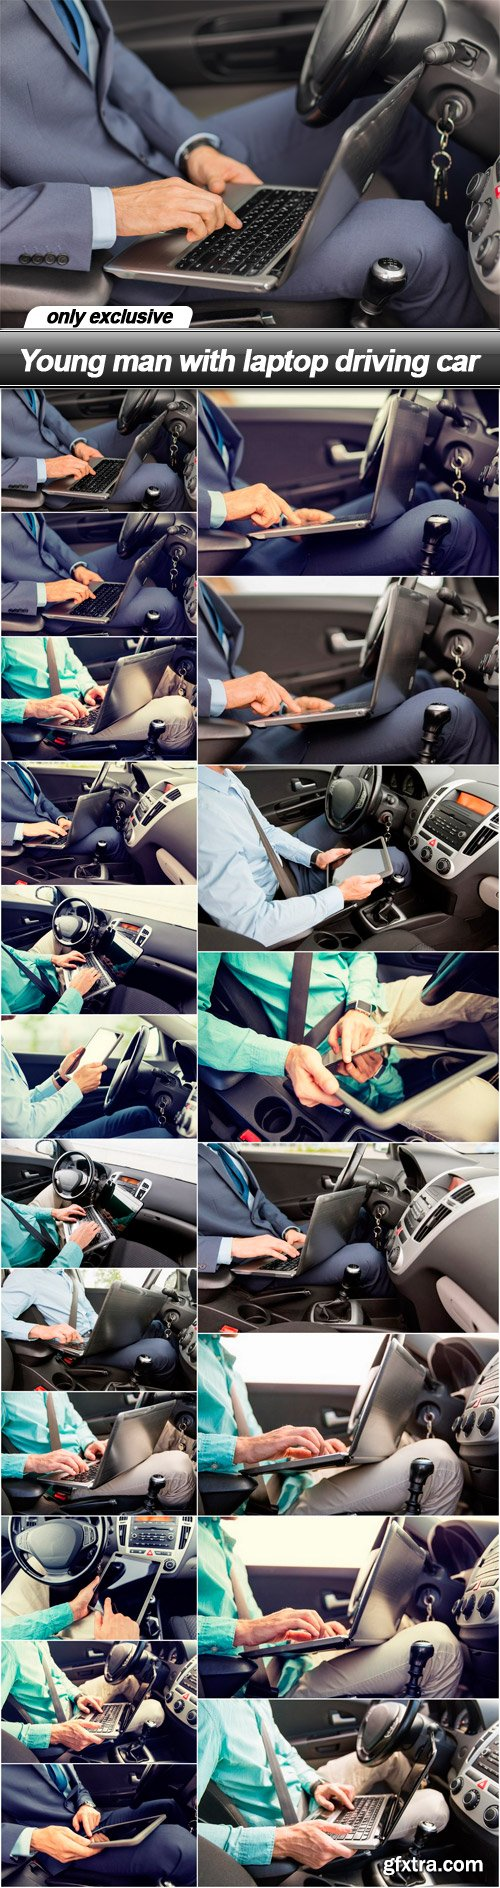 Young man with laptop driving car - 20 UHQ JPEG